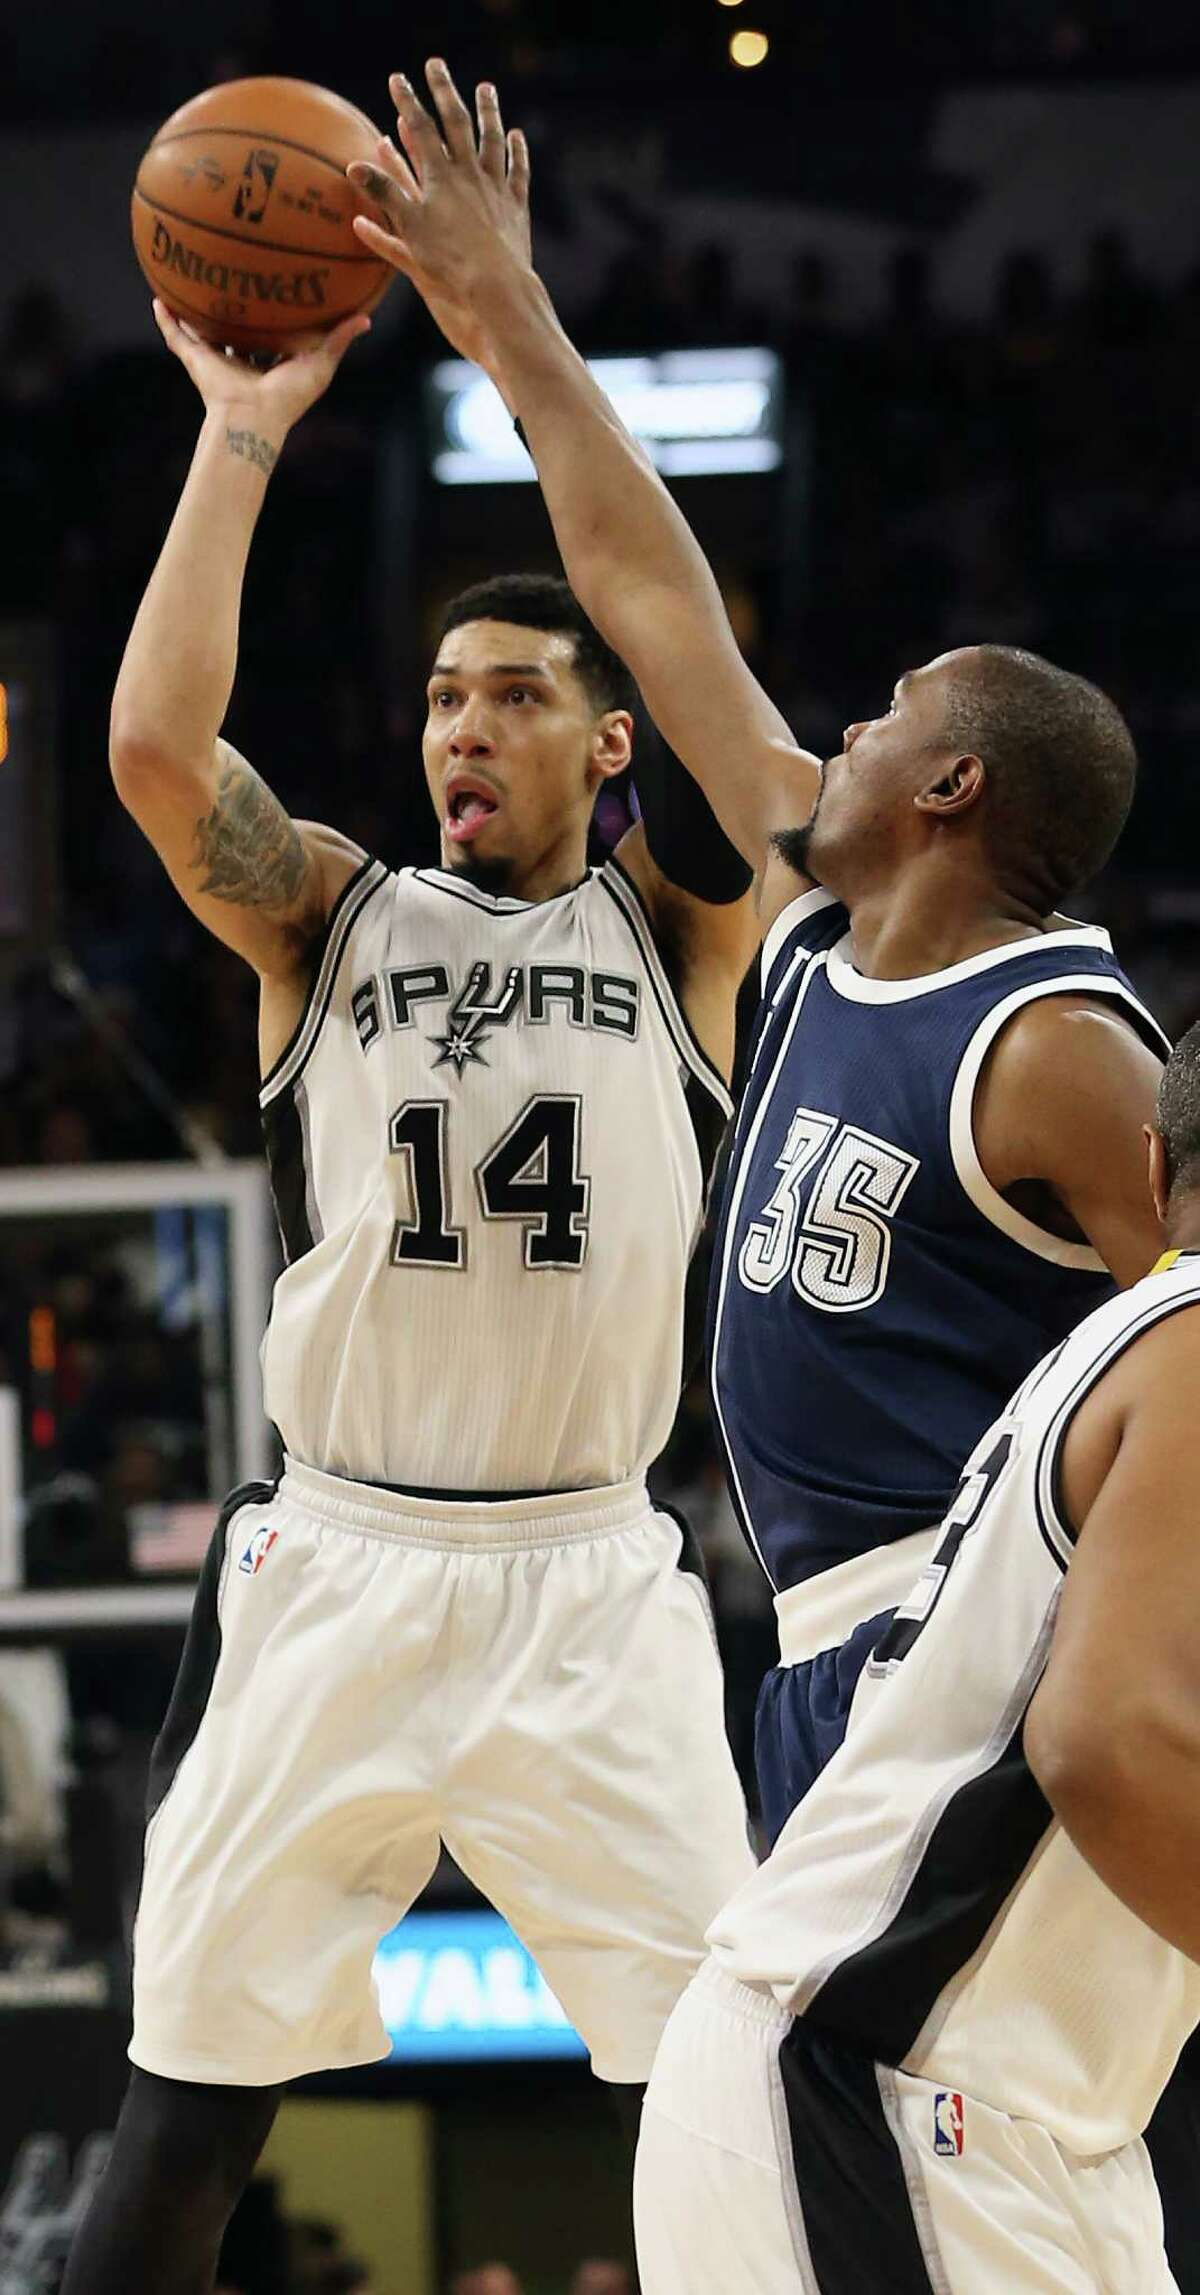 Danny Green pumps a three pointer and is fouled by Kevin Durant as the Spurs host the Thunder in game 1 of second round NBA playoff action at the AT&T Center on April 230, 2016.